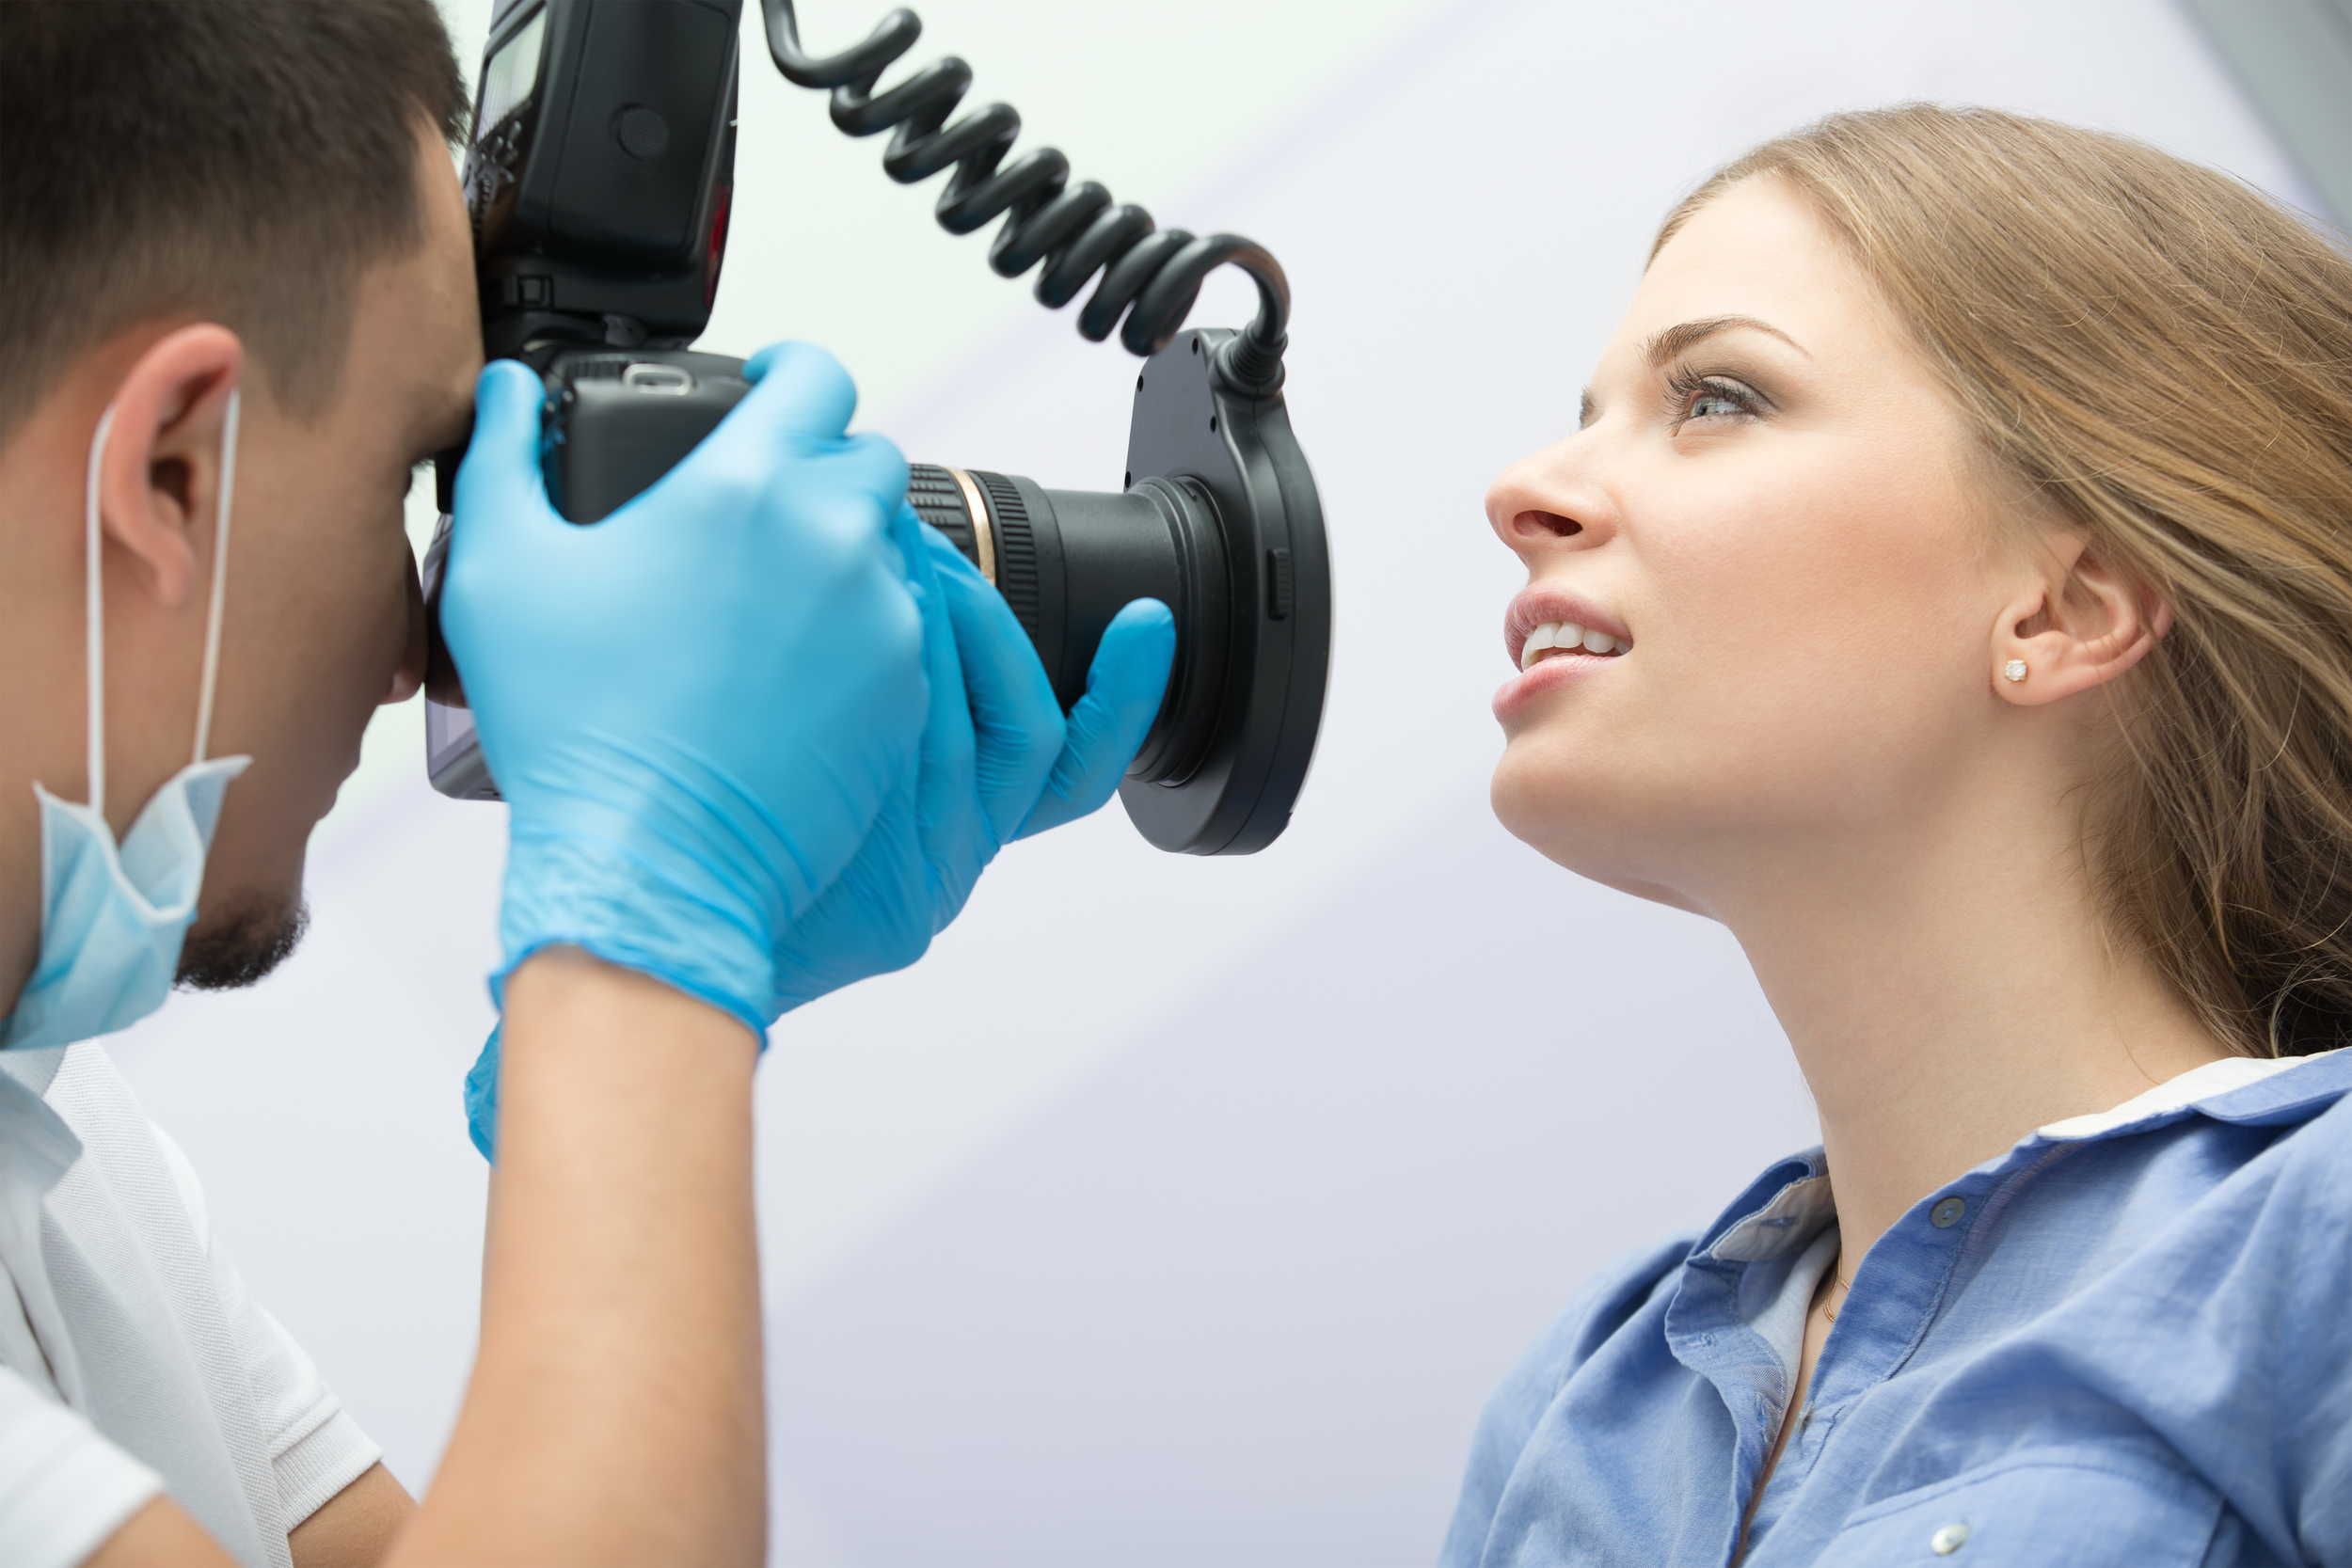 8 to 8 Dental uses the latest dental technology to bring you the highest quality care.